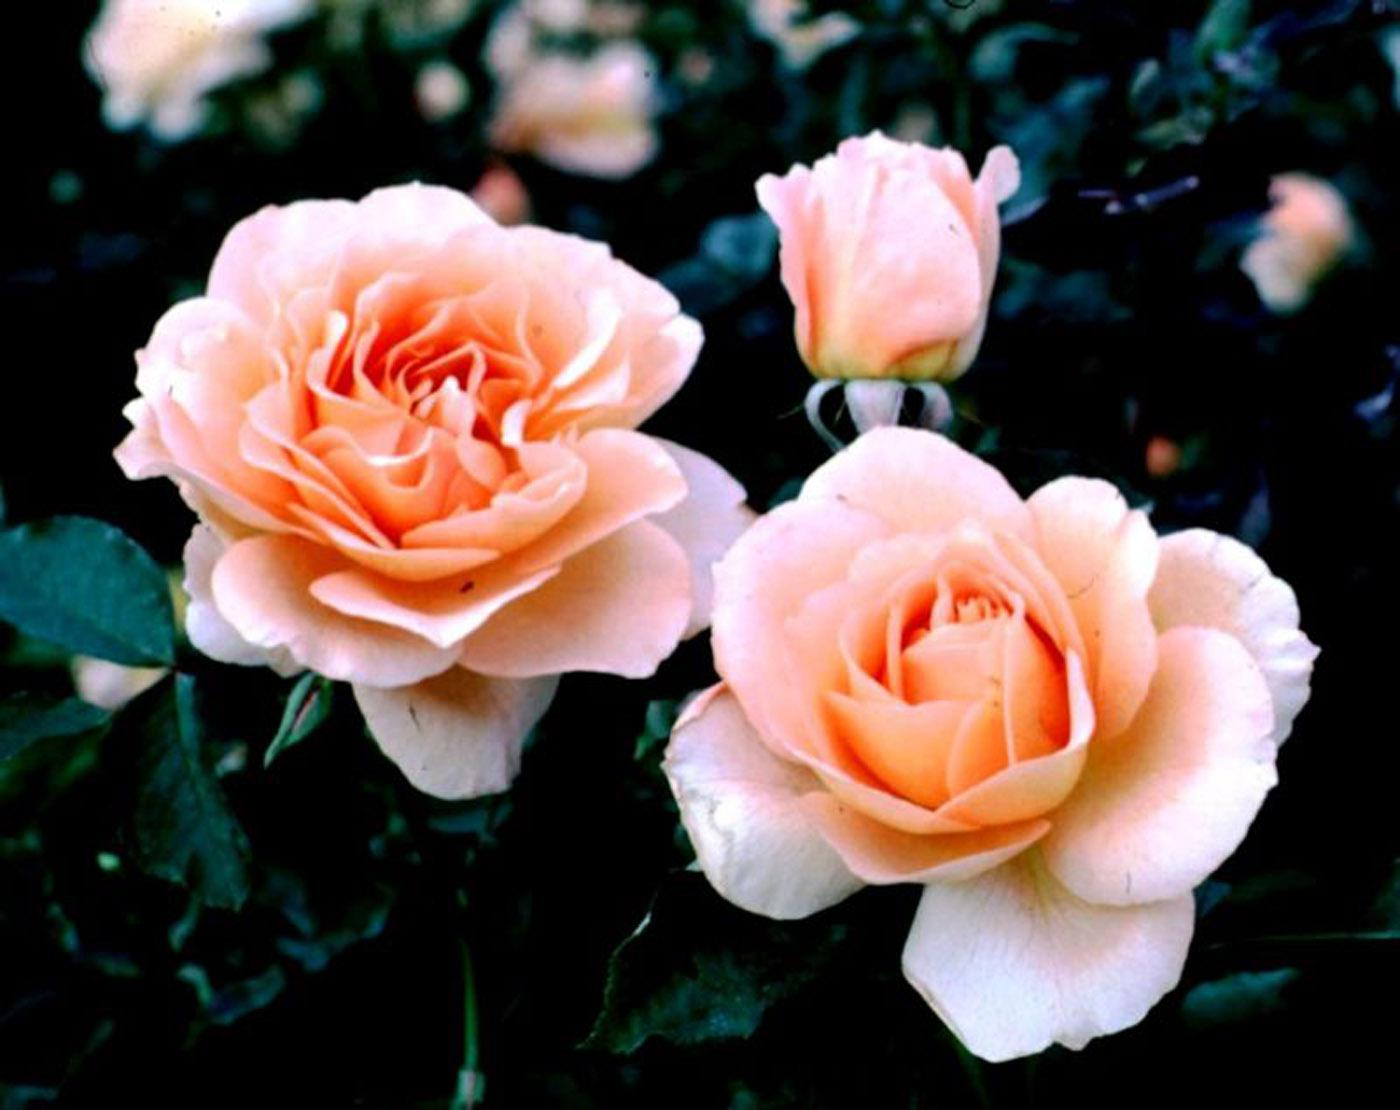 AARS winning roses are all judged on 15 key gardening characteristics including disease resistance, hardiness, color, form, flowering effect, fragrance, vigor and novelty. Winners must perform exceptionally well over a two-year period in numerous test gardens throughout the United States.